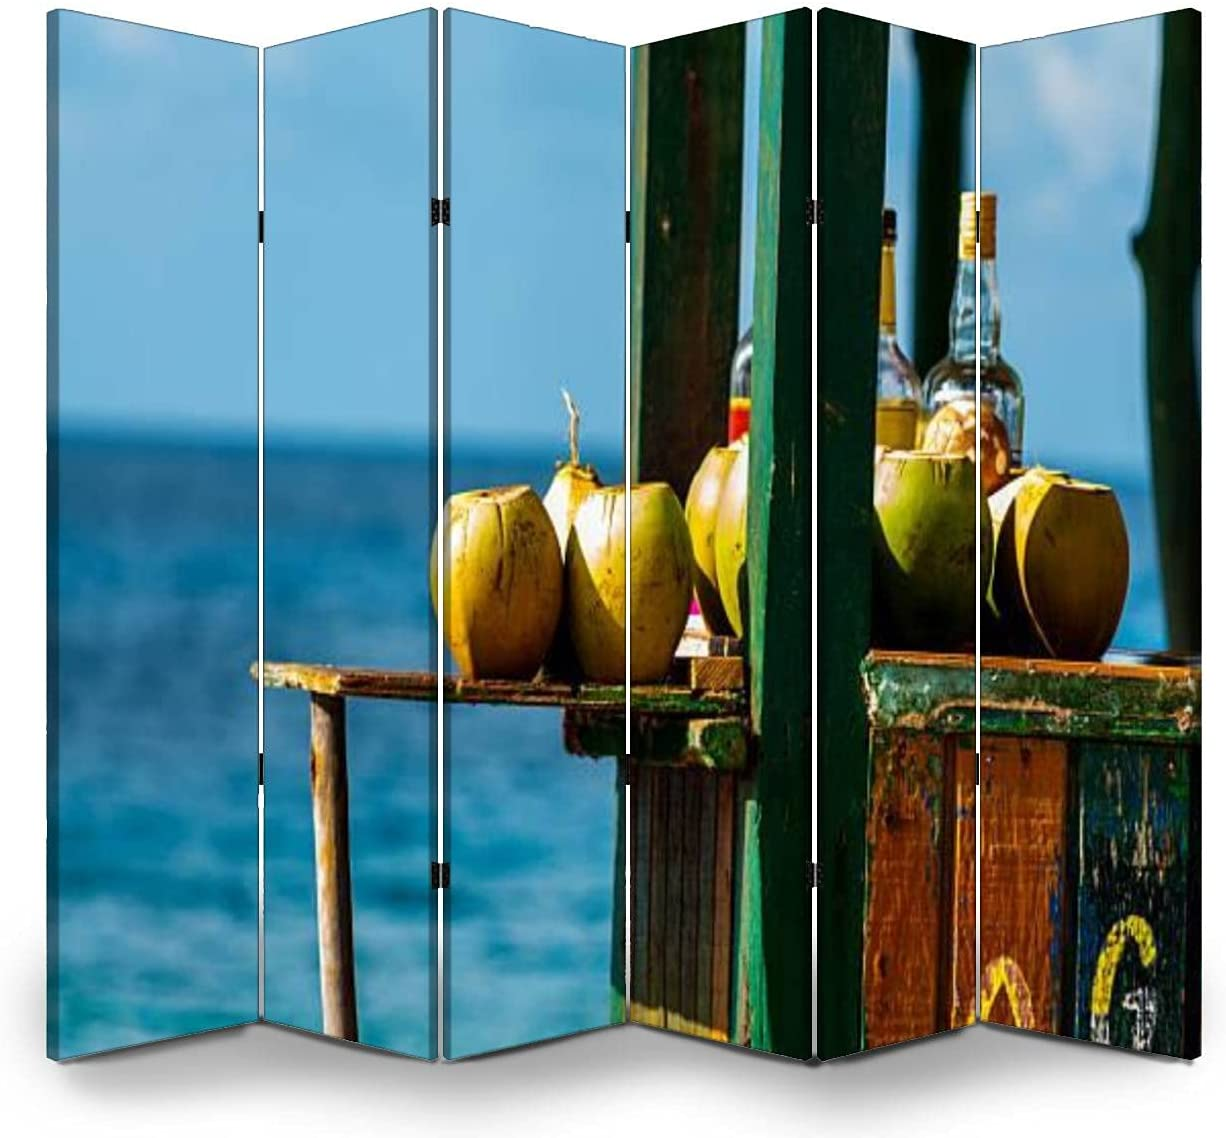 Dola-Dola 6 Luxury Panels Screen Room Divider Large discharge sale in a Bar Coconuts Folding